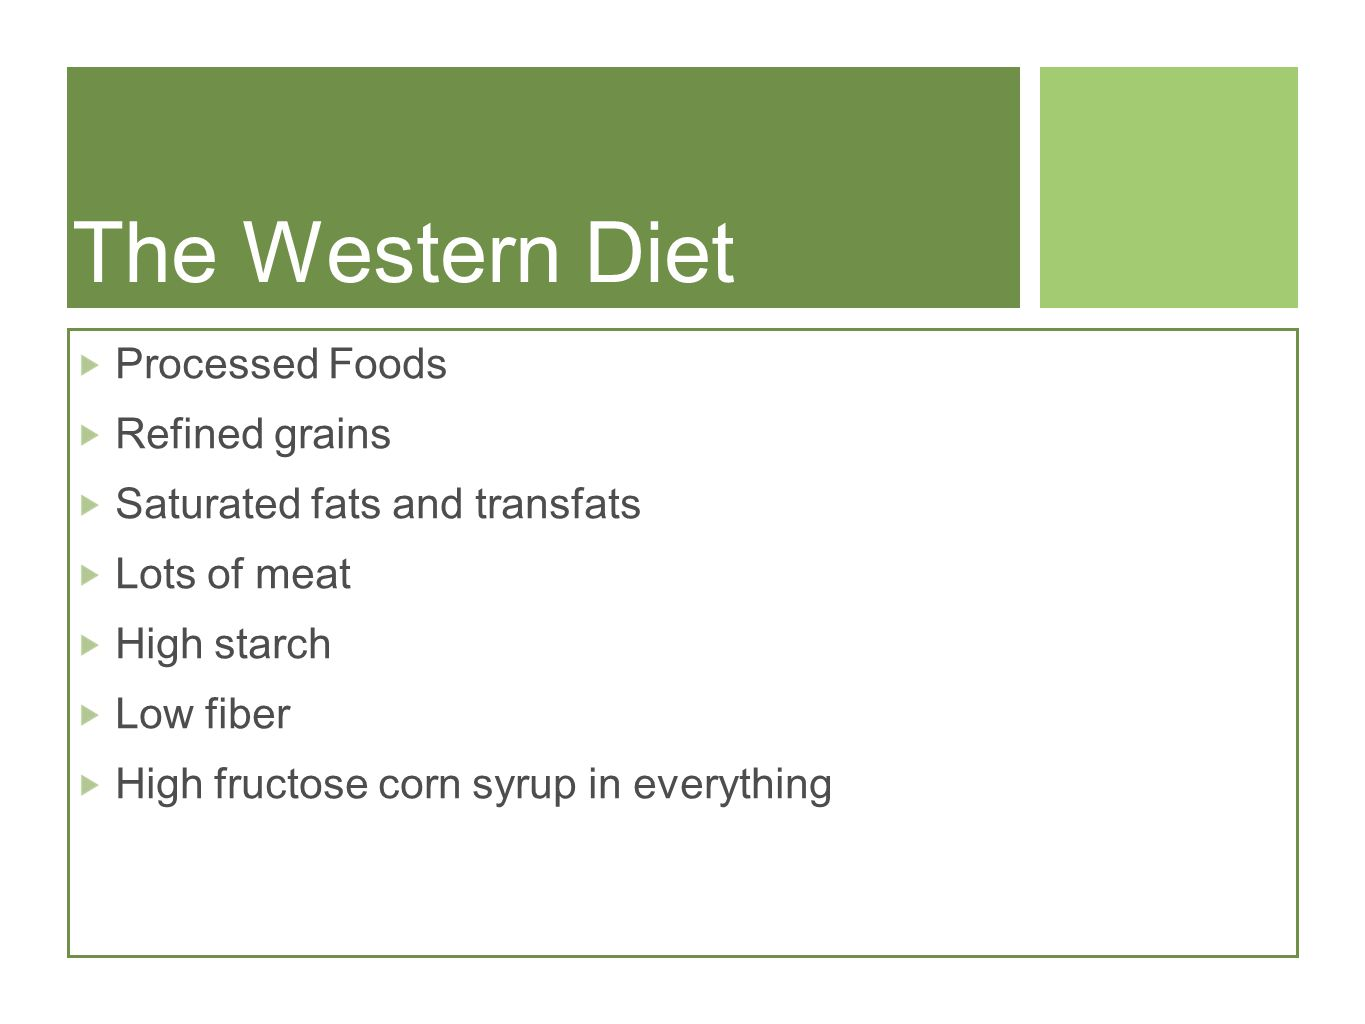 The Western Diet Processed Foods Refined grains Saturated fats and transfats Lots of meat High starch Low fiber High fructose corn syrup in everything